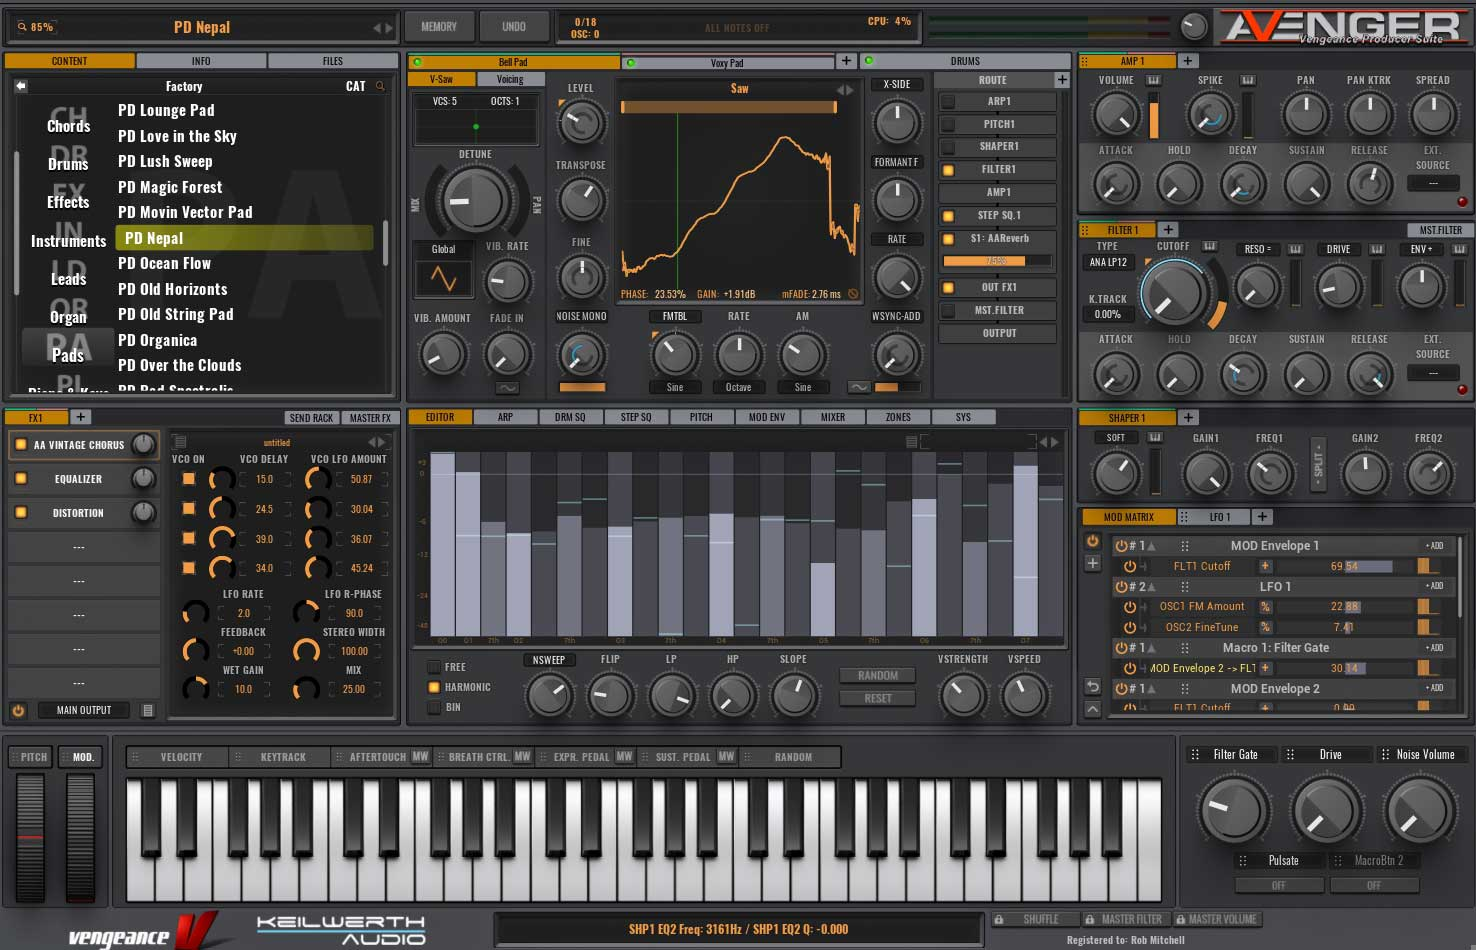 Vengeance Producer Suite Avenger v1.2.2 WIN & MacOSX + Factory Content & Expansions